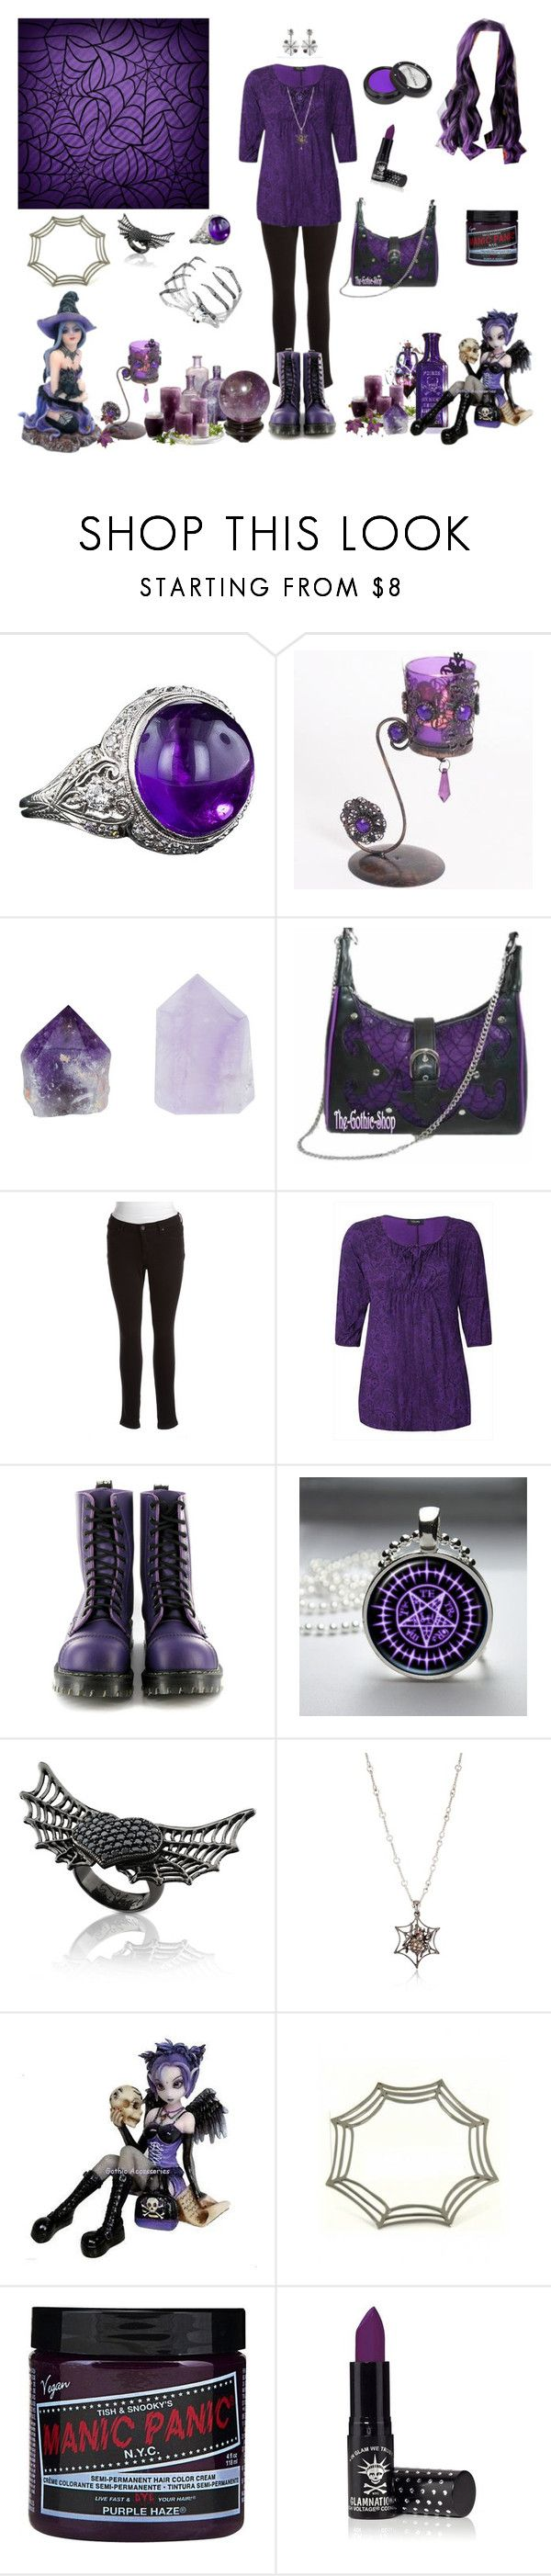 """""""A Little Touch of Purple"""" by merlettigotici ❤ liked on Polyvore featuring Once Upon a Time, Jessica Simpson, Vegetarian Shoes, Sebastian Professional, Sheeva, Borgioni, Stephen Webster, Disaya, Capelli New York and Manic Panic NYC"""